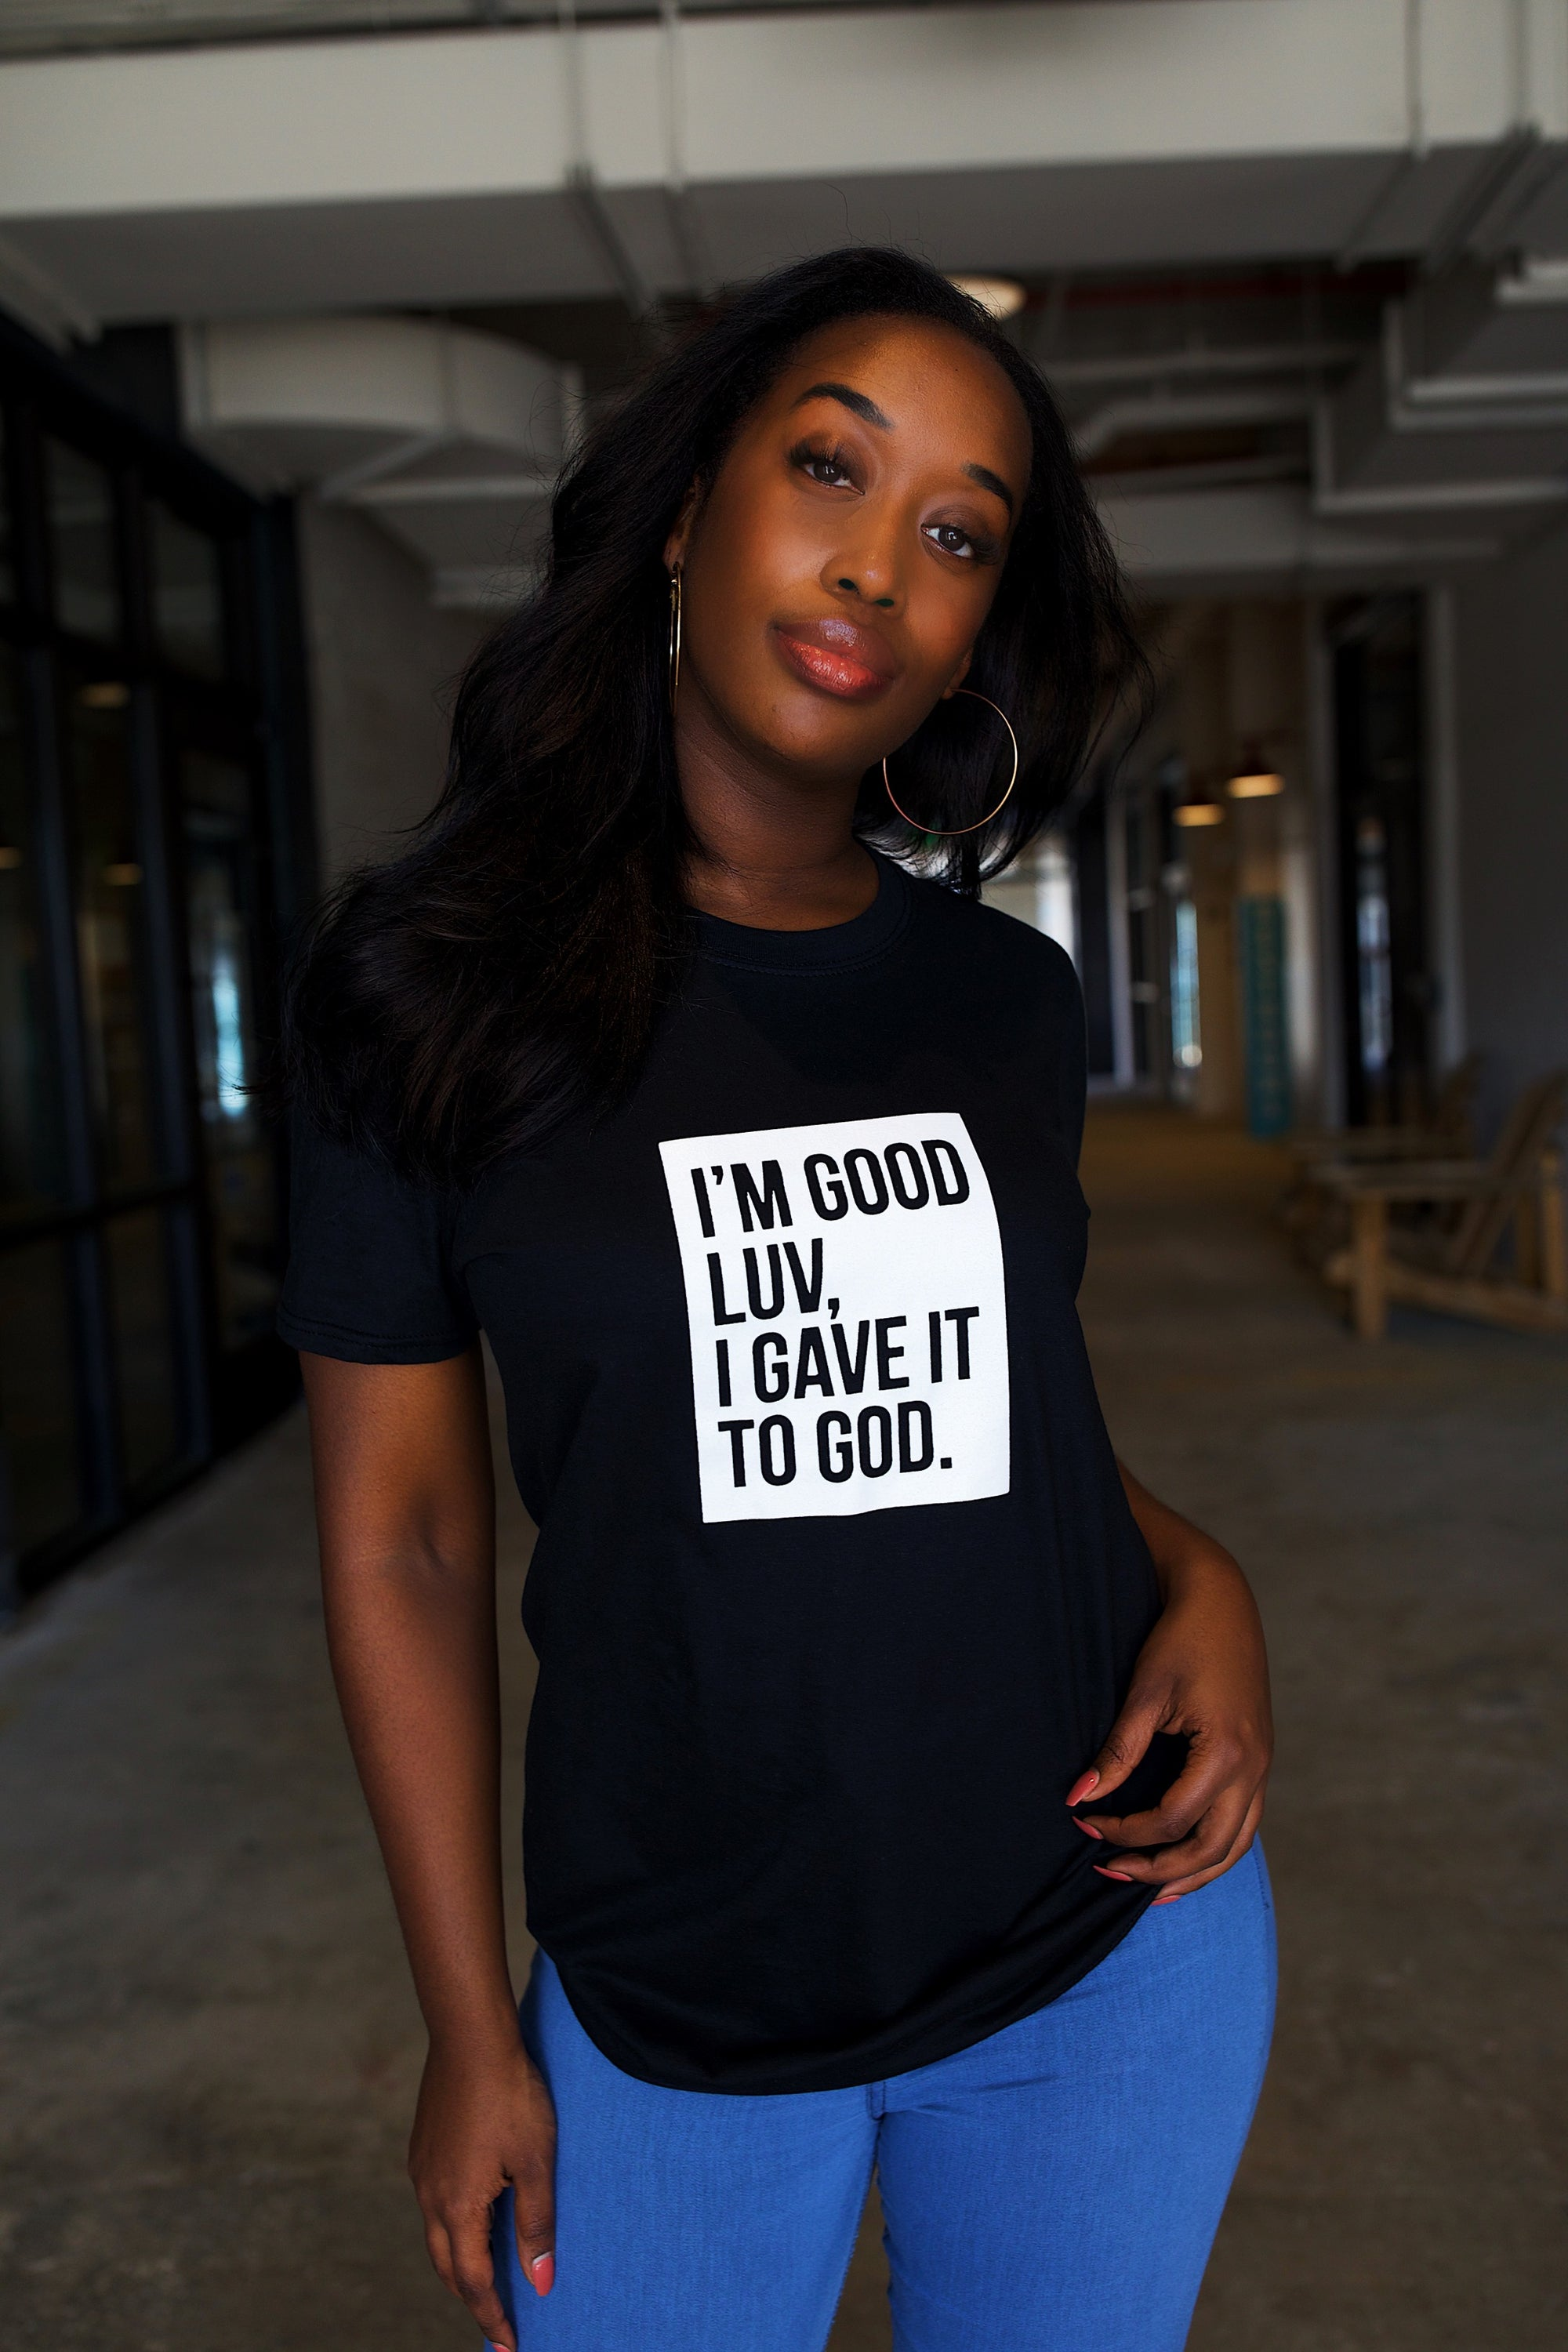 I'M GOOD LUV (BLACK/WHITE BOX TEE)